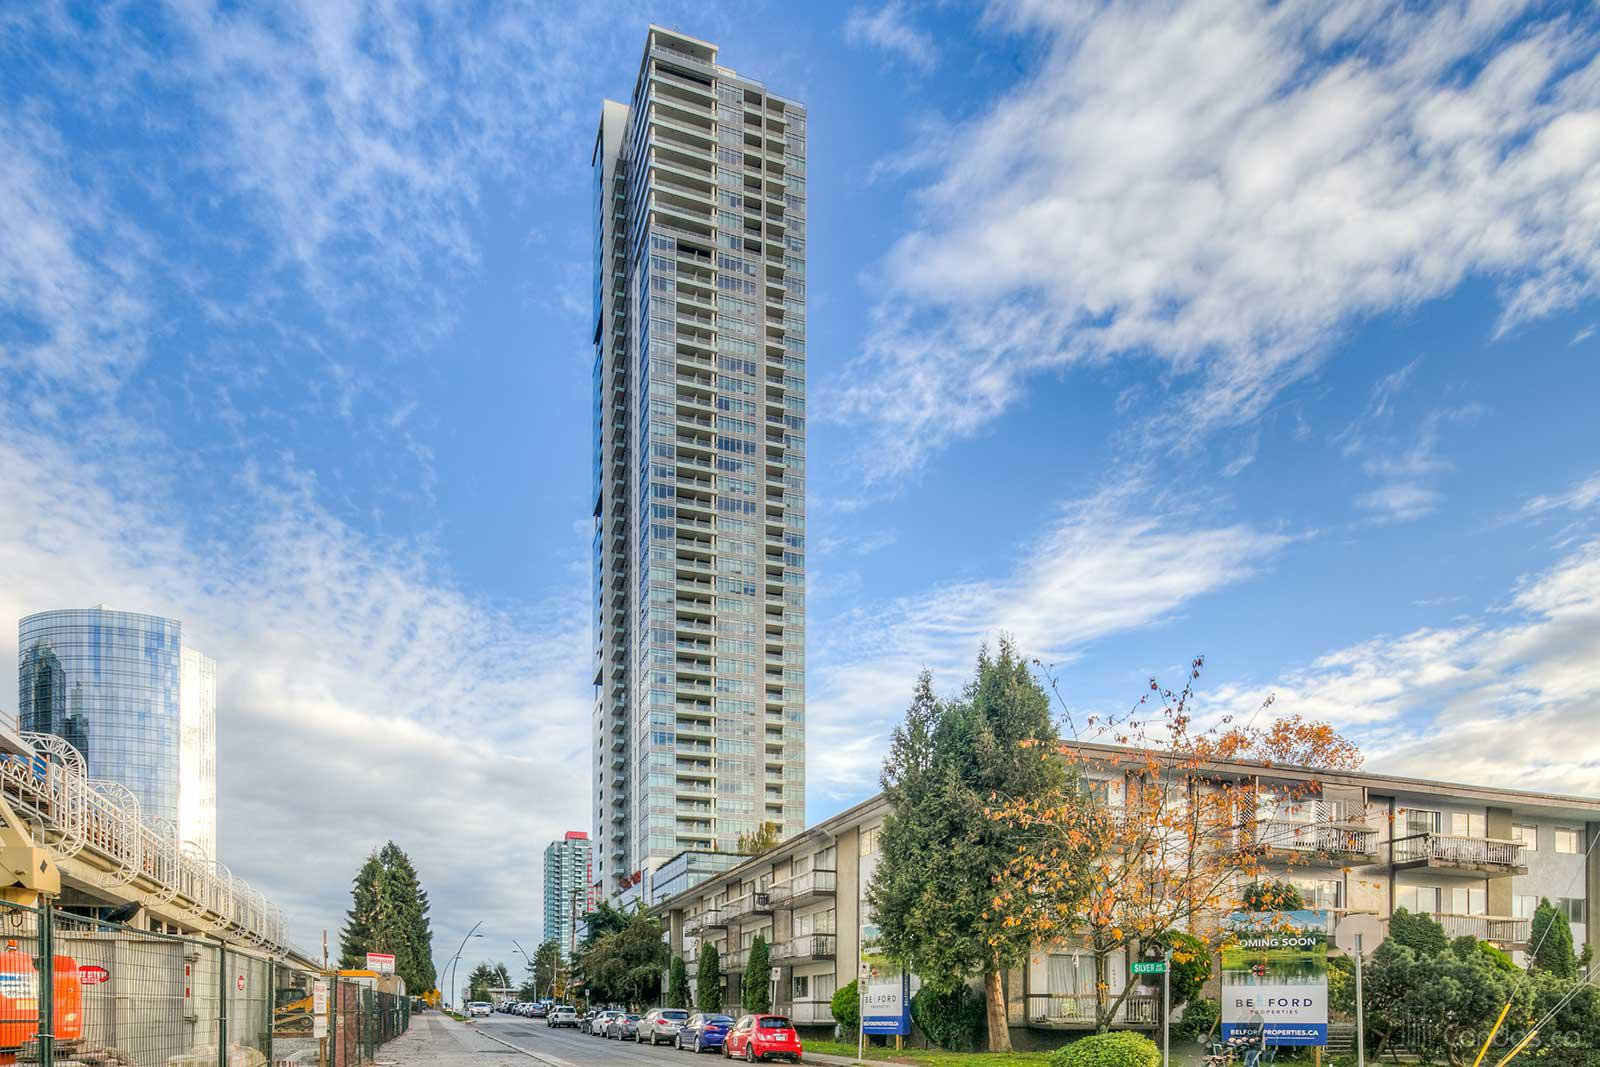 Metroplace at 6461 Telford Ave, Burnaby 0